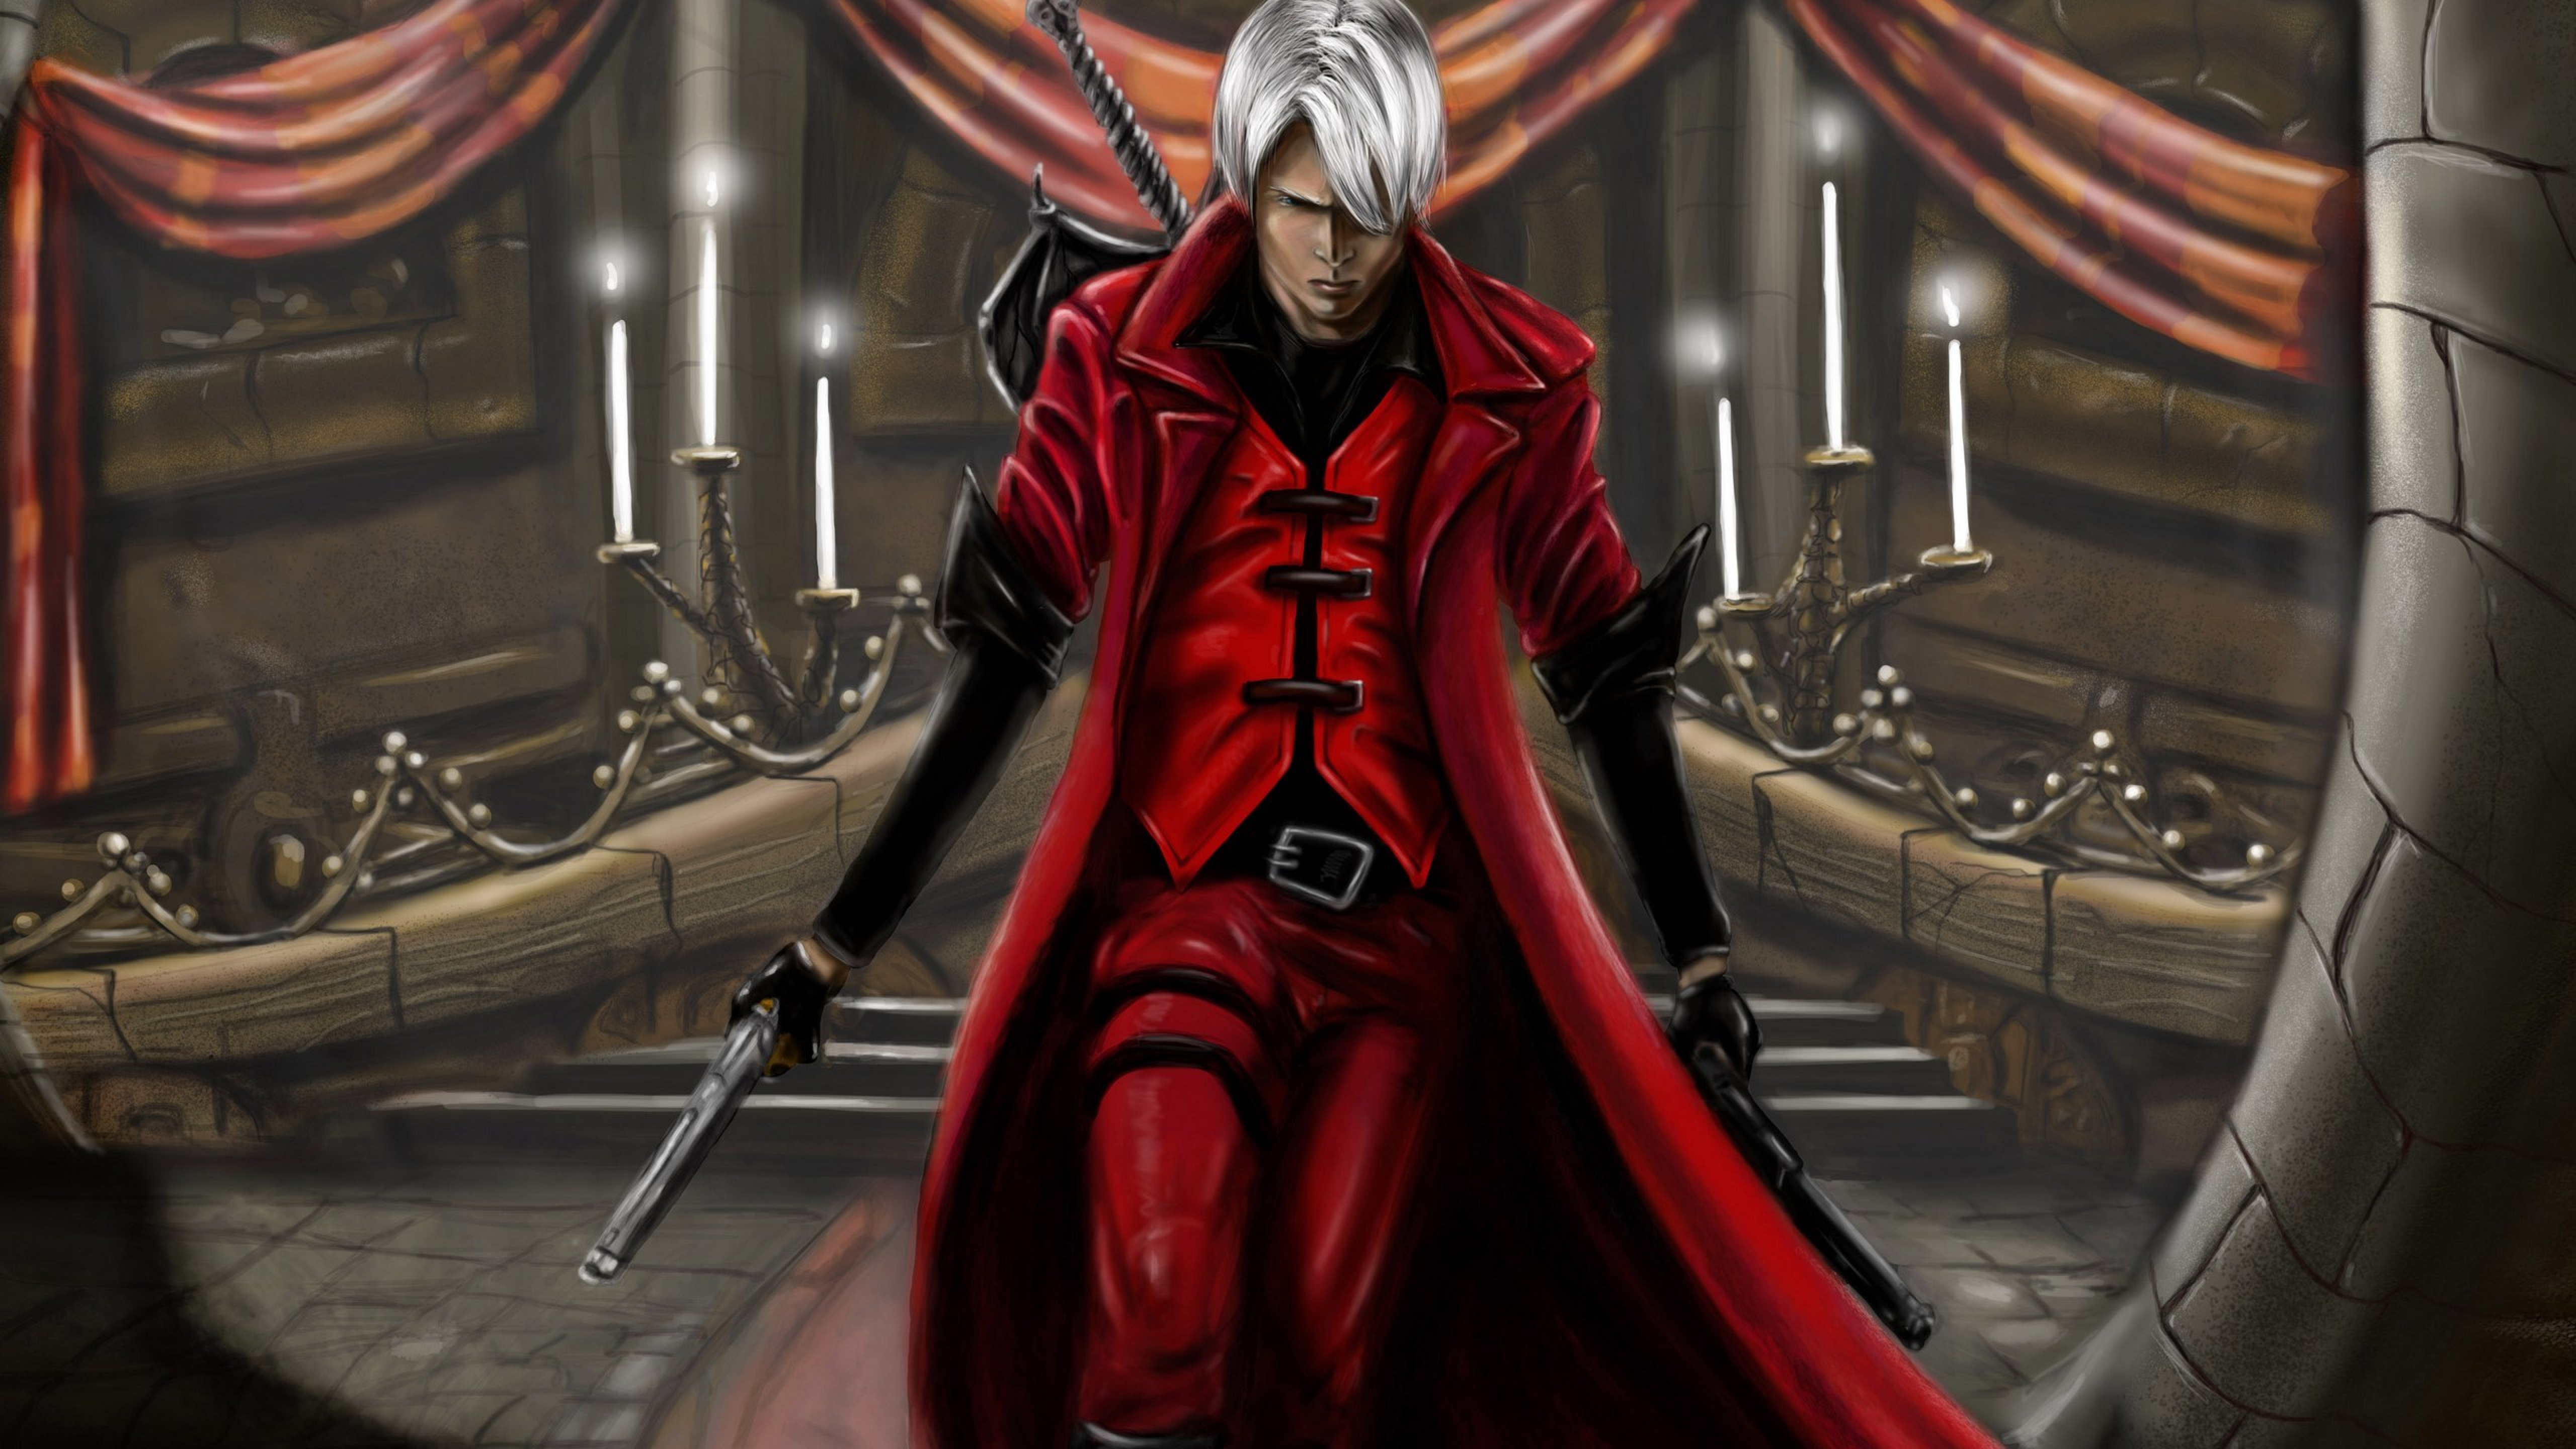 5120x2880 Devil May Cry 1 Dmc 1 Demon 5k Wallpaper Hd Games 4k